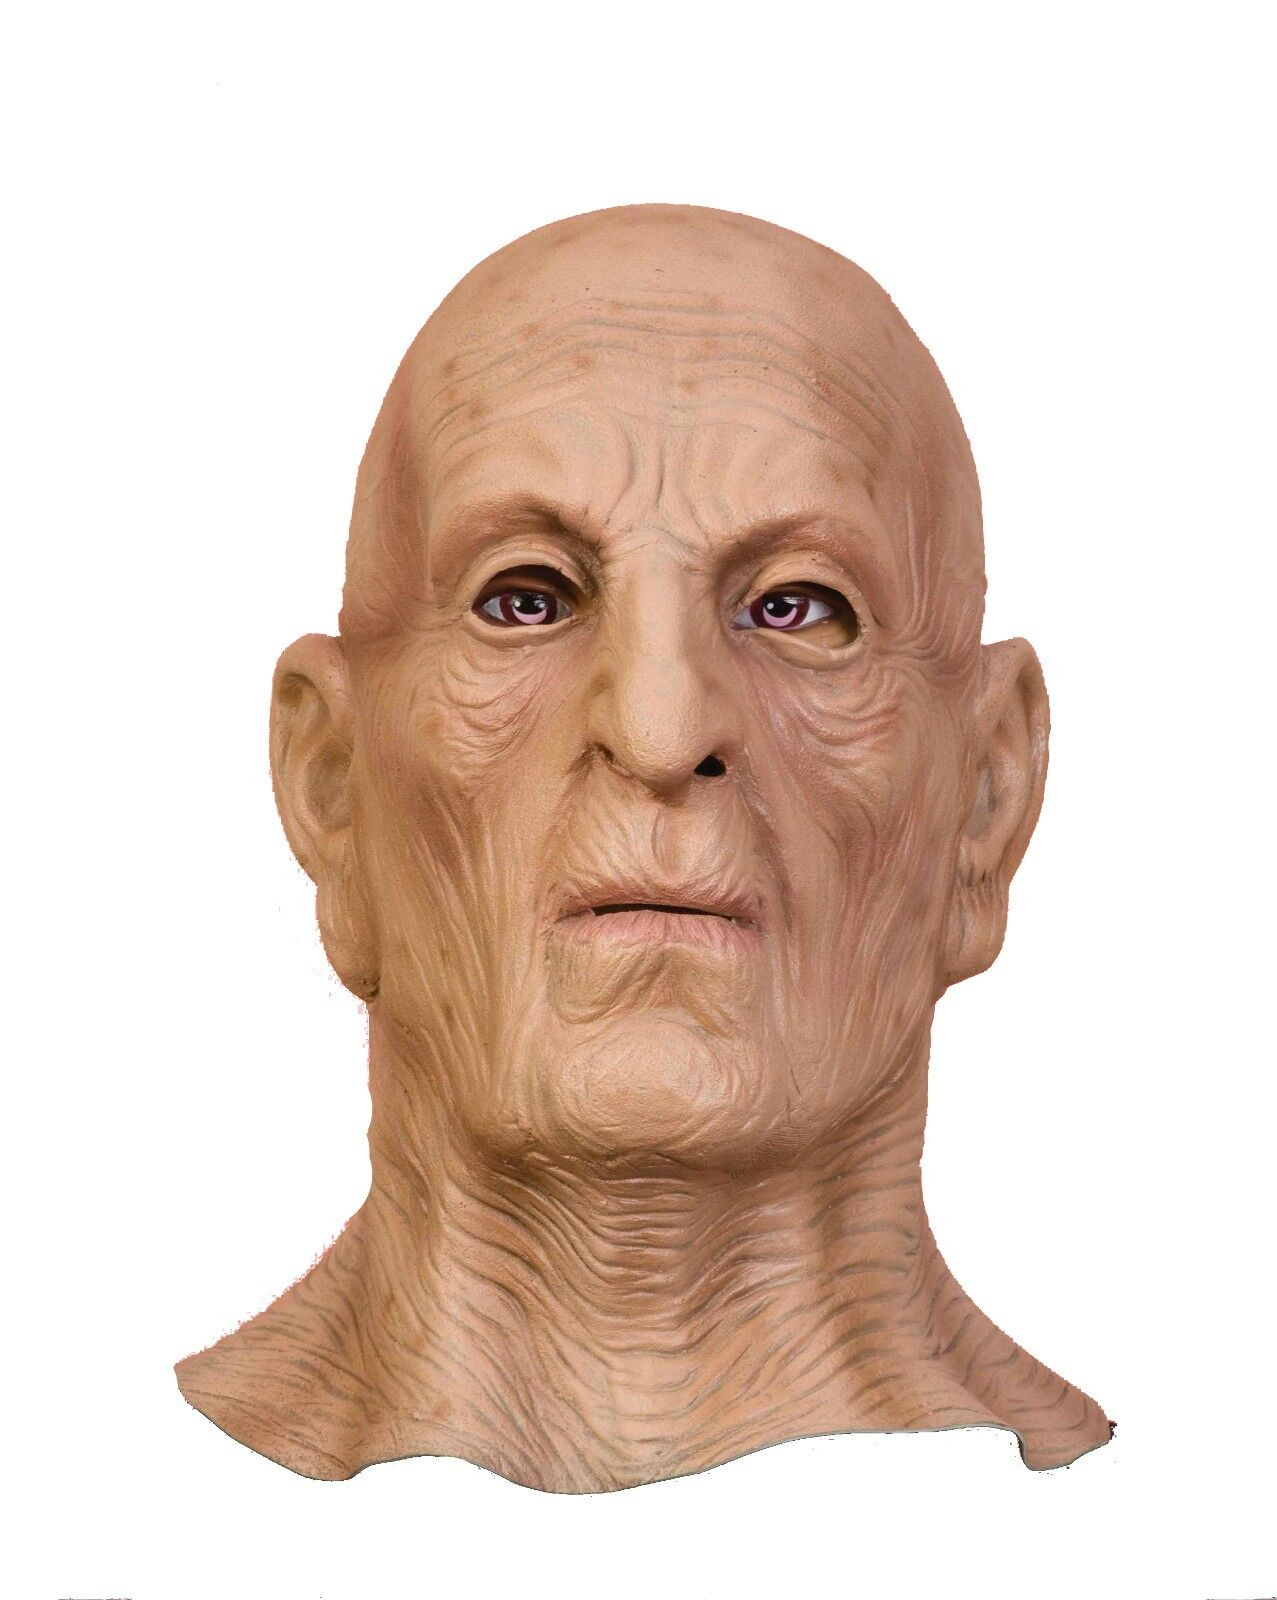 Creepy Vinyl Old Man Mask Scary Face Halloween Costume Wrink